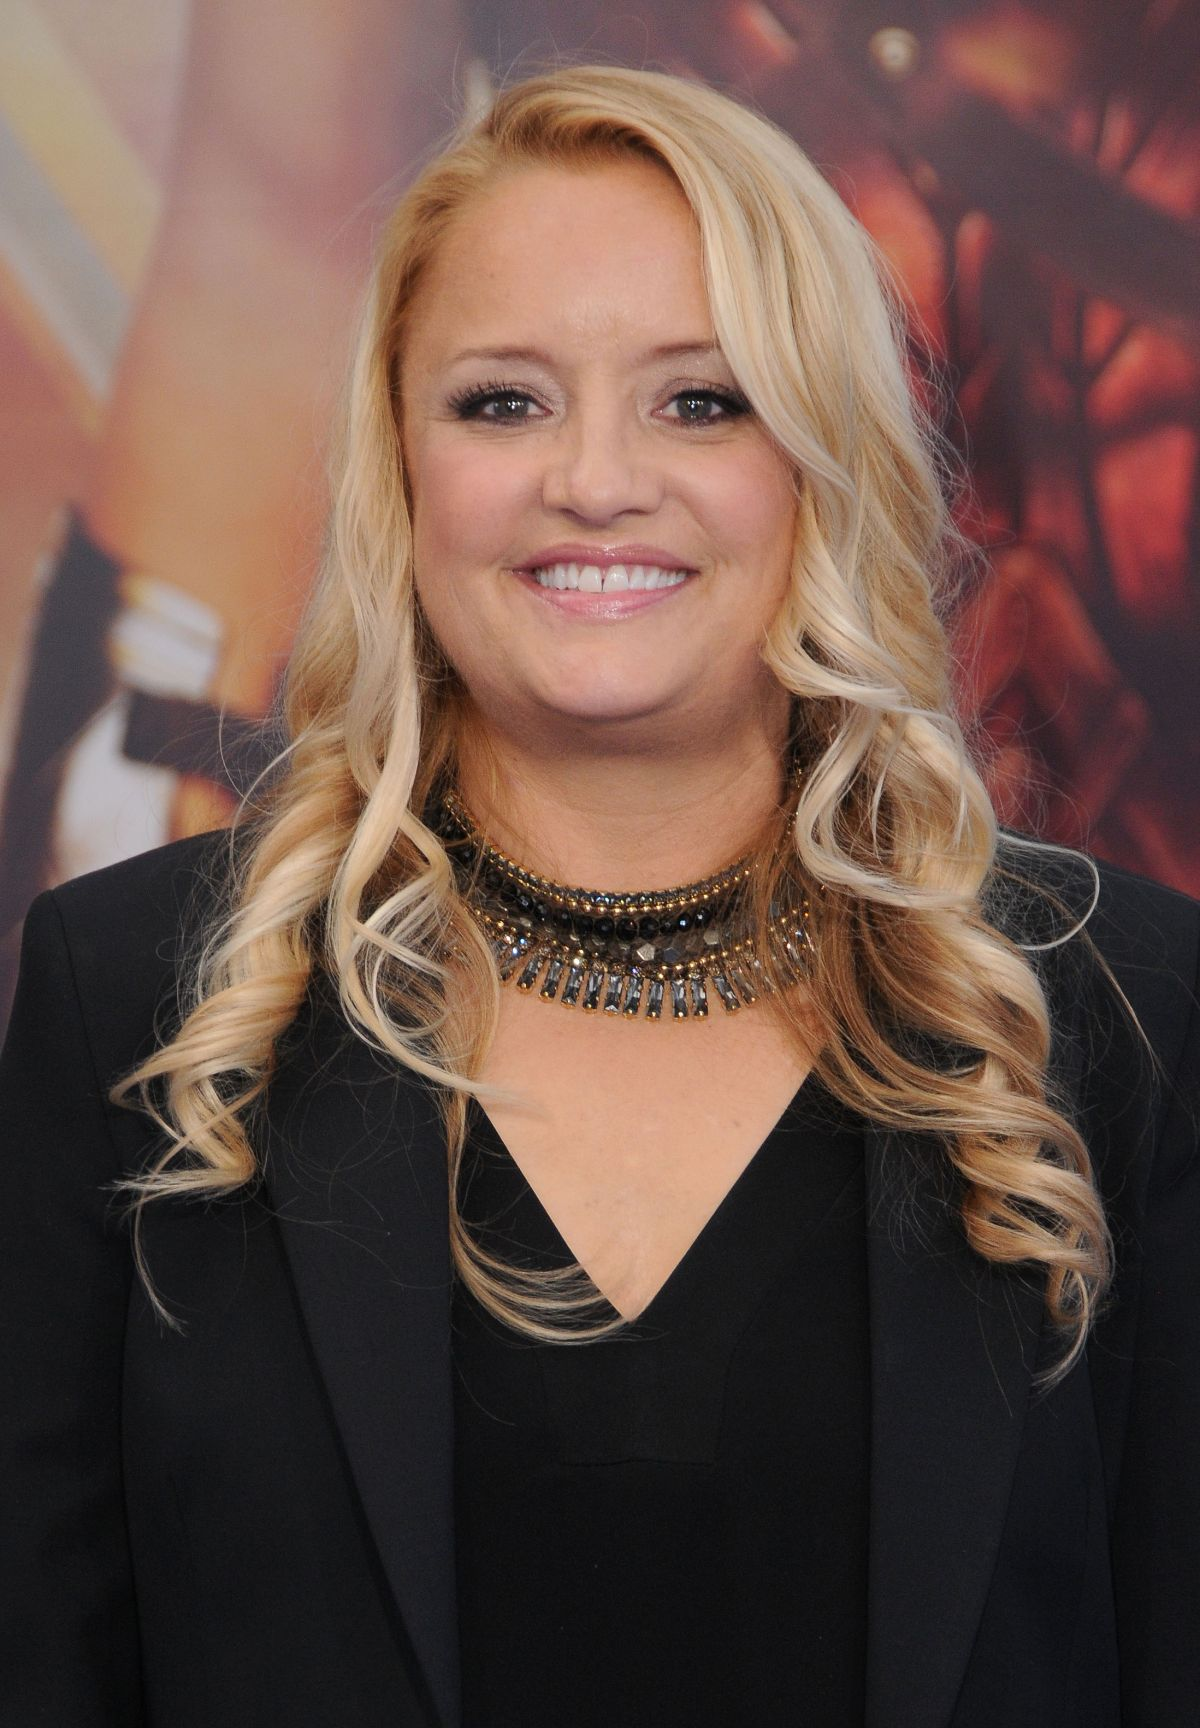 LUCY DAVIS at Wonder Woman Premiere in Los Angeles 05/25/2017